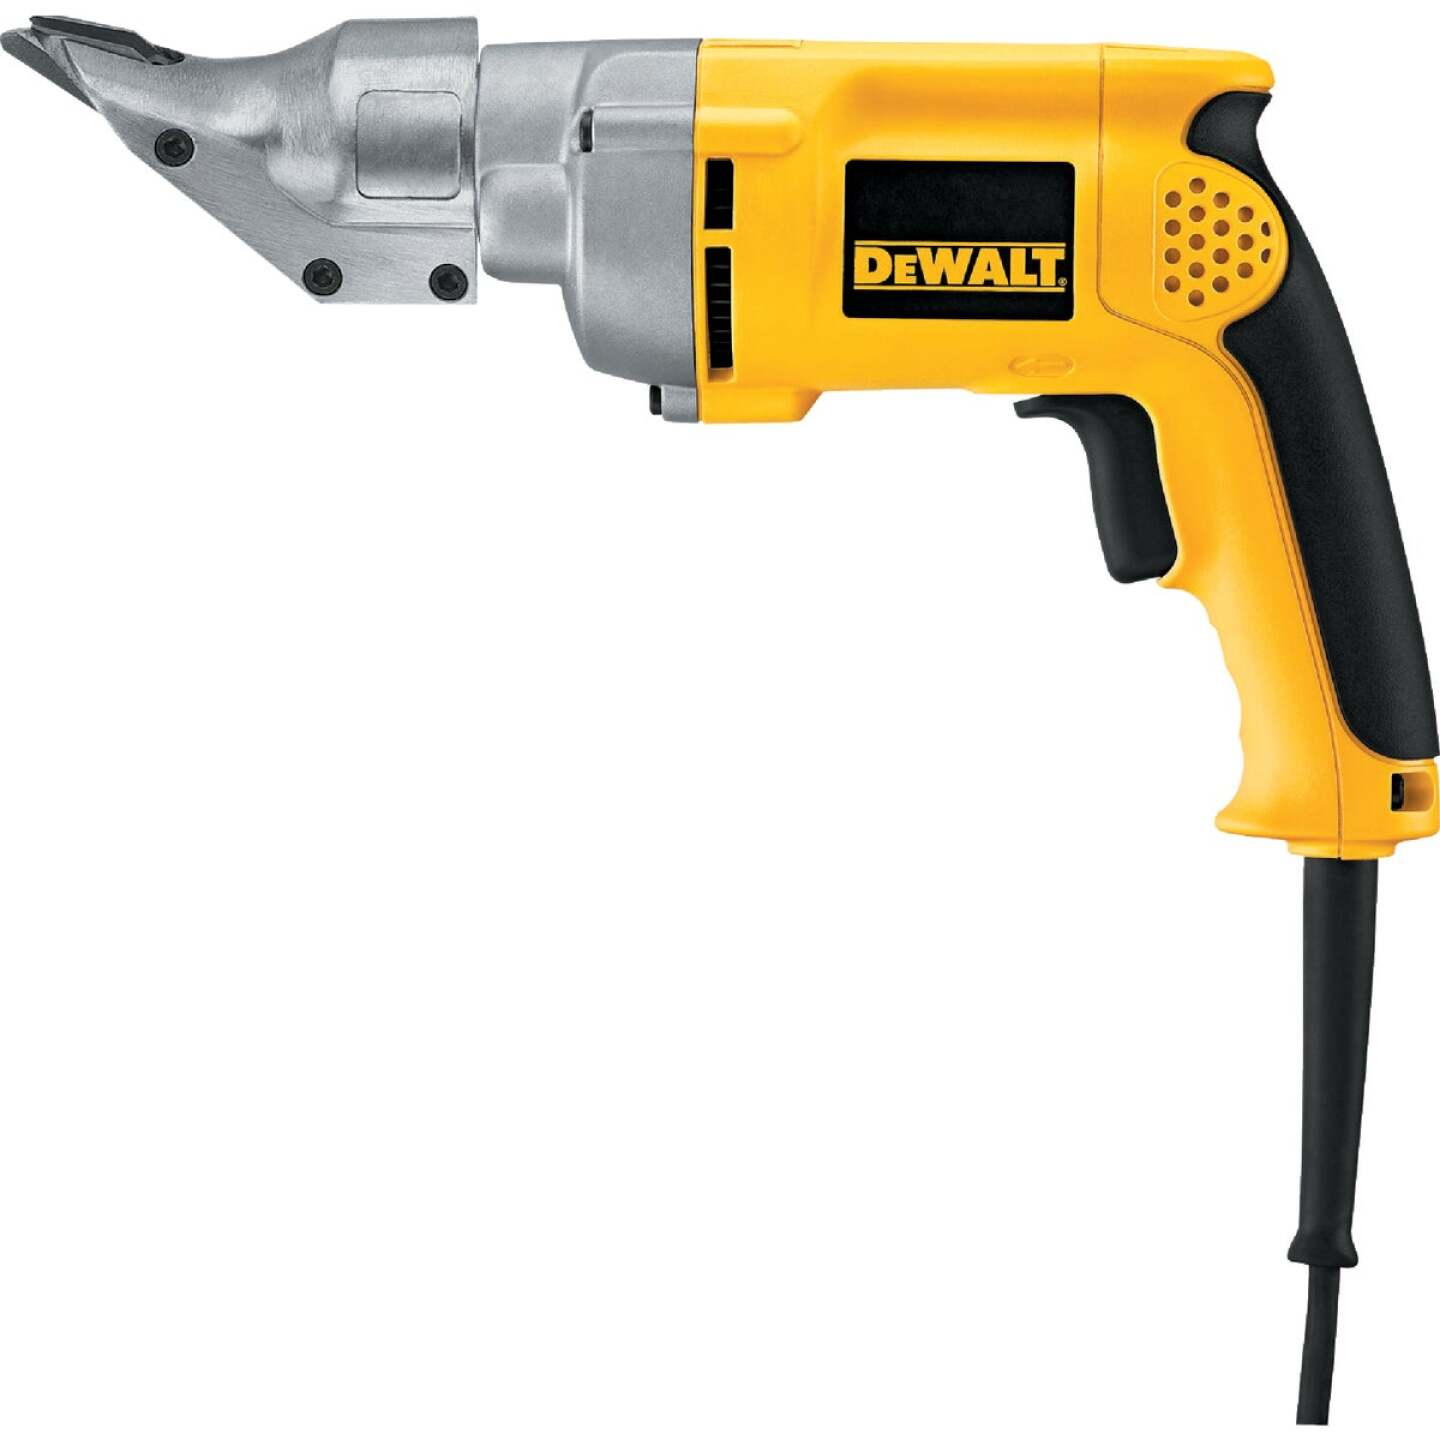 DeWalt 18-Gauge 5-Amp Swivel Head Shear Image 1